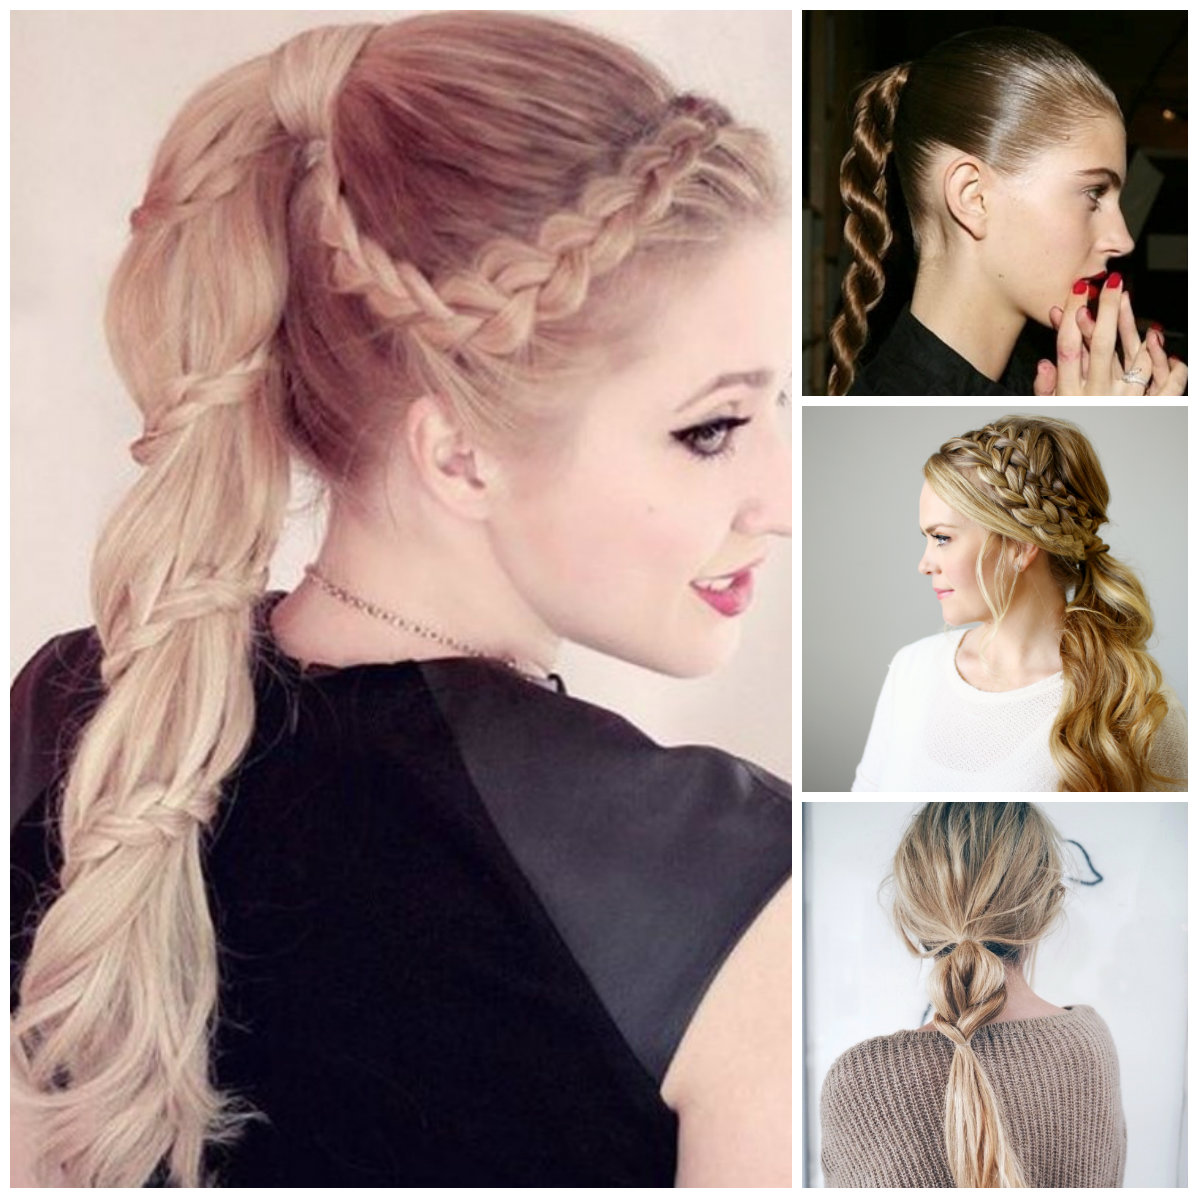 braided hairstyle for women 2016